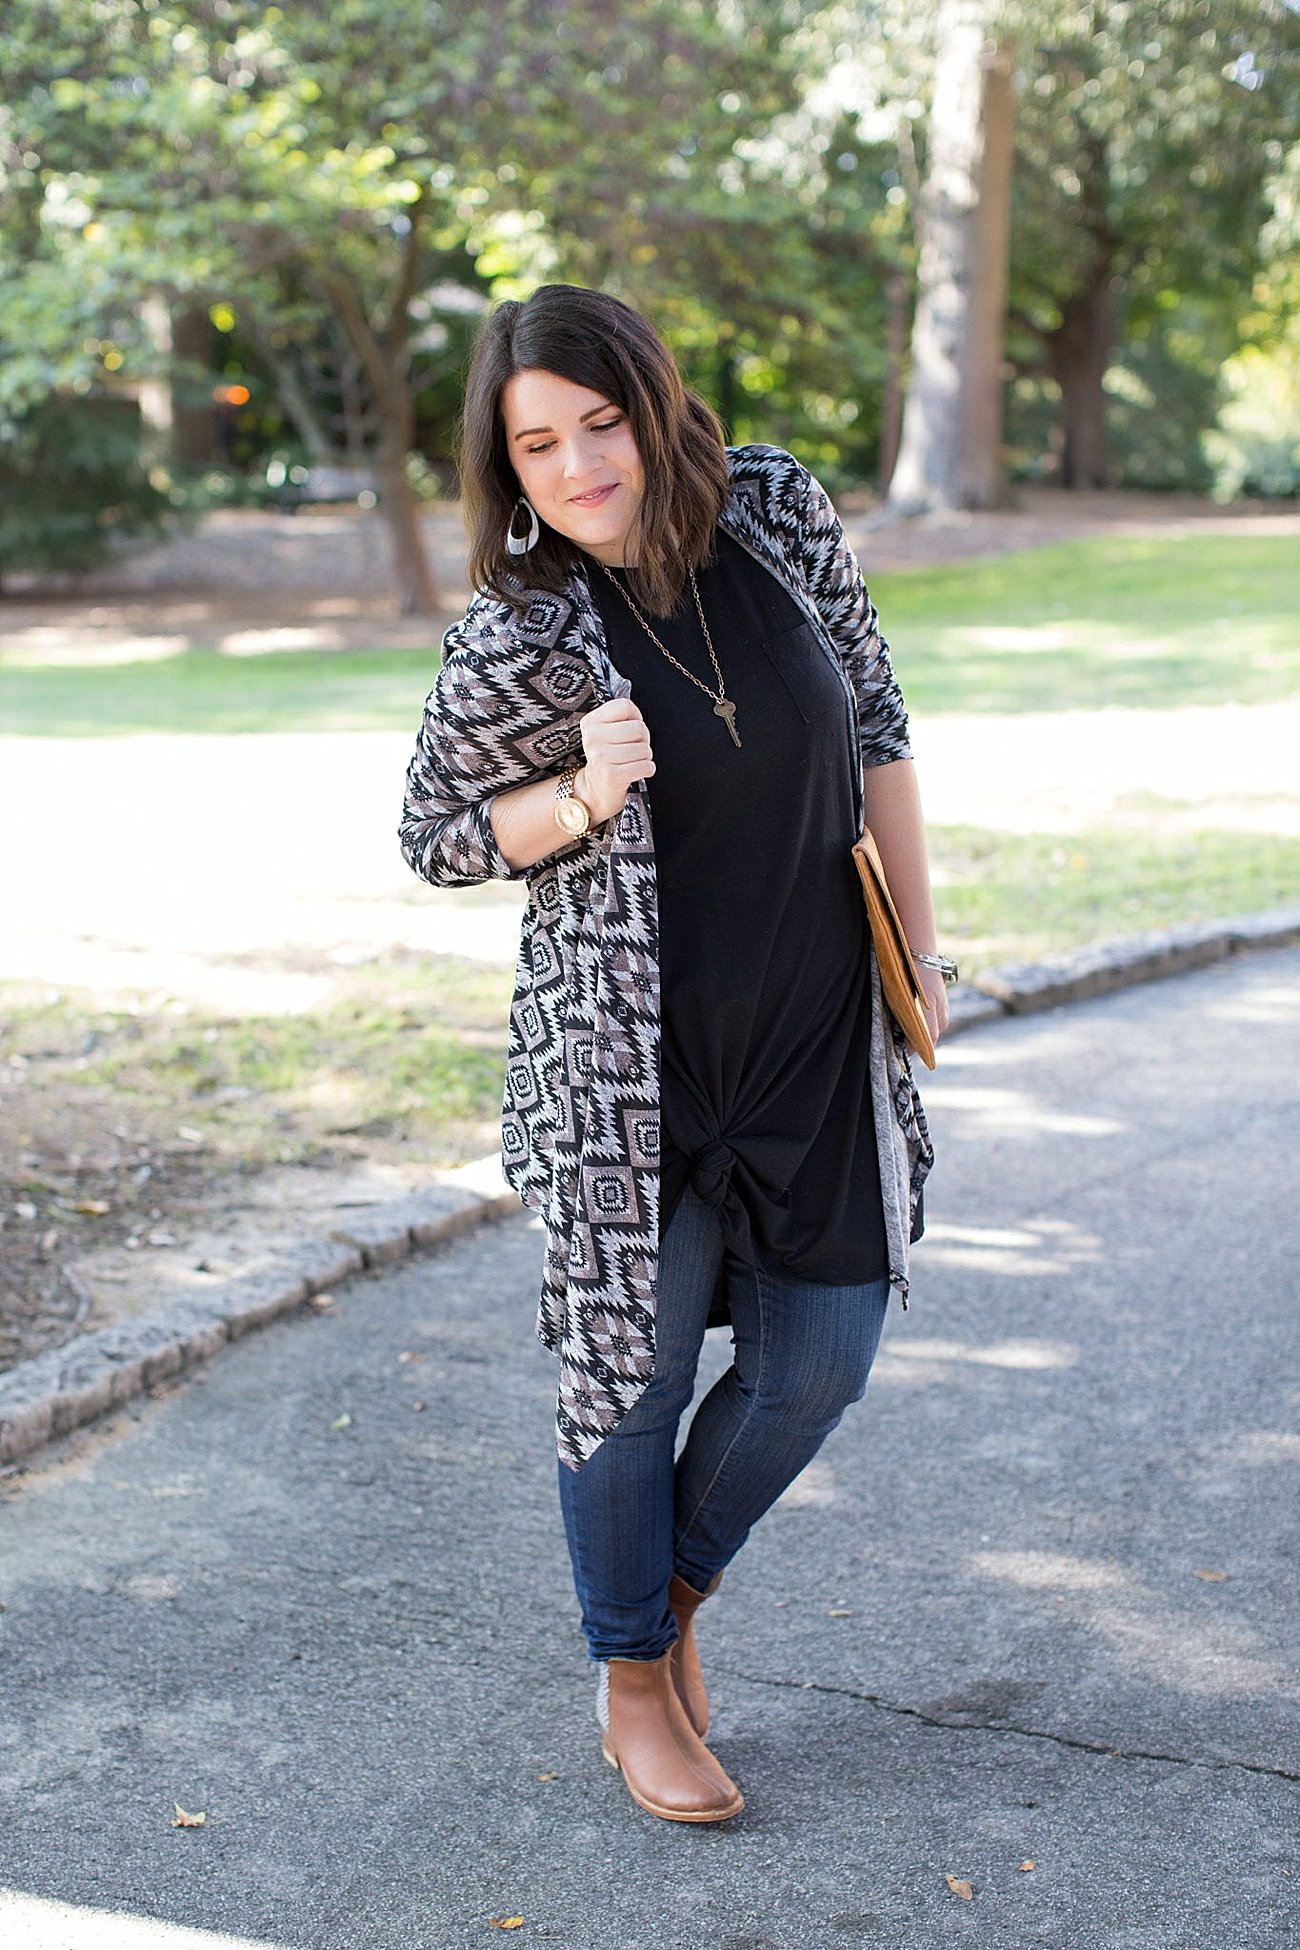 Lularoe Carly dress, skinny jeans, The Root Collective Espe booties, The Flourish Market cardigan (5)